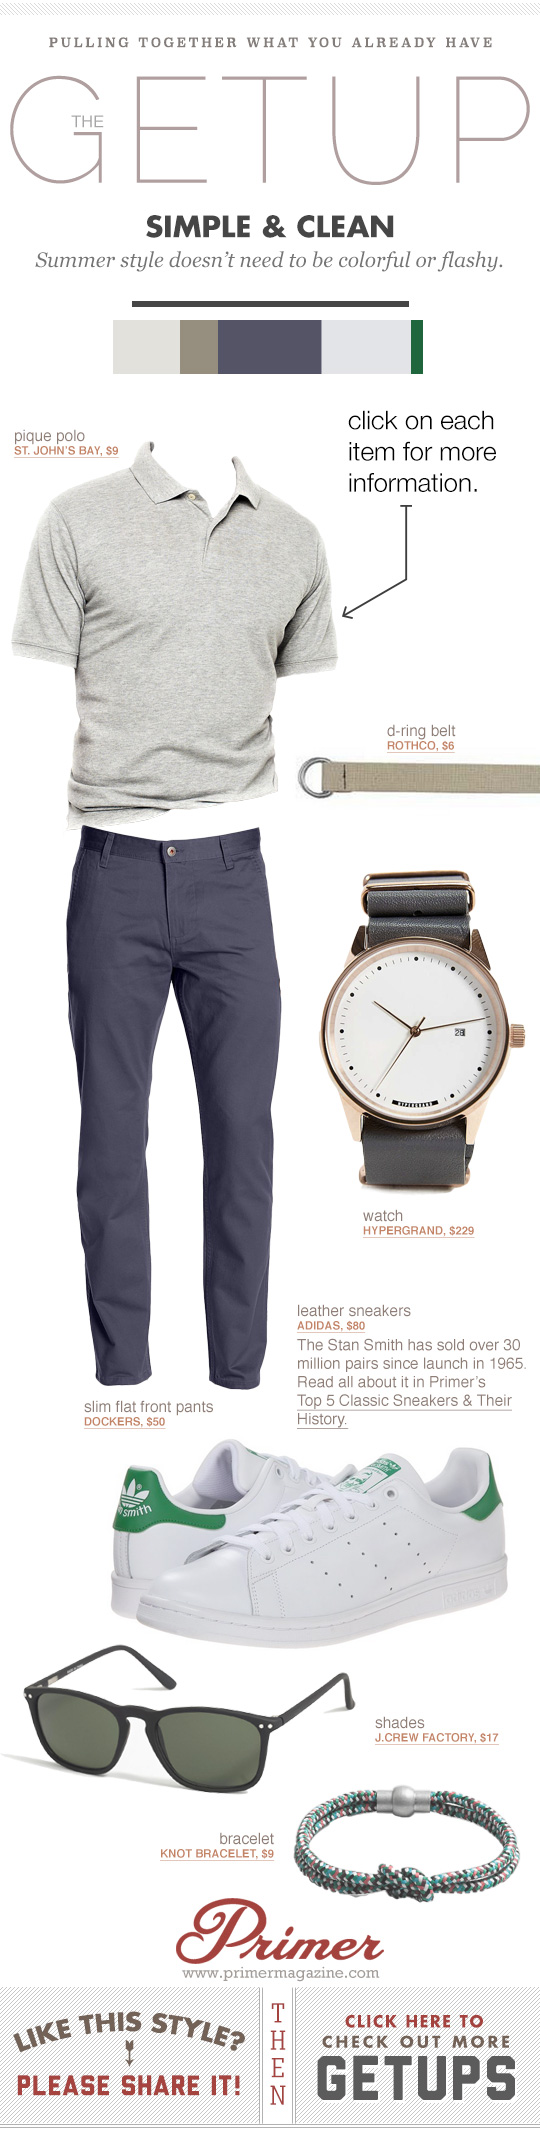 Getup Simple and Clean - Gray polo, slim blue pants, white sneakers